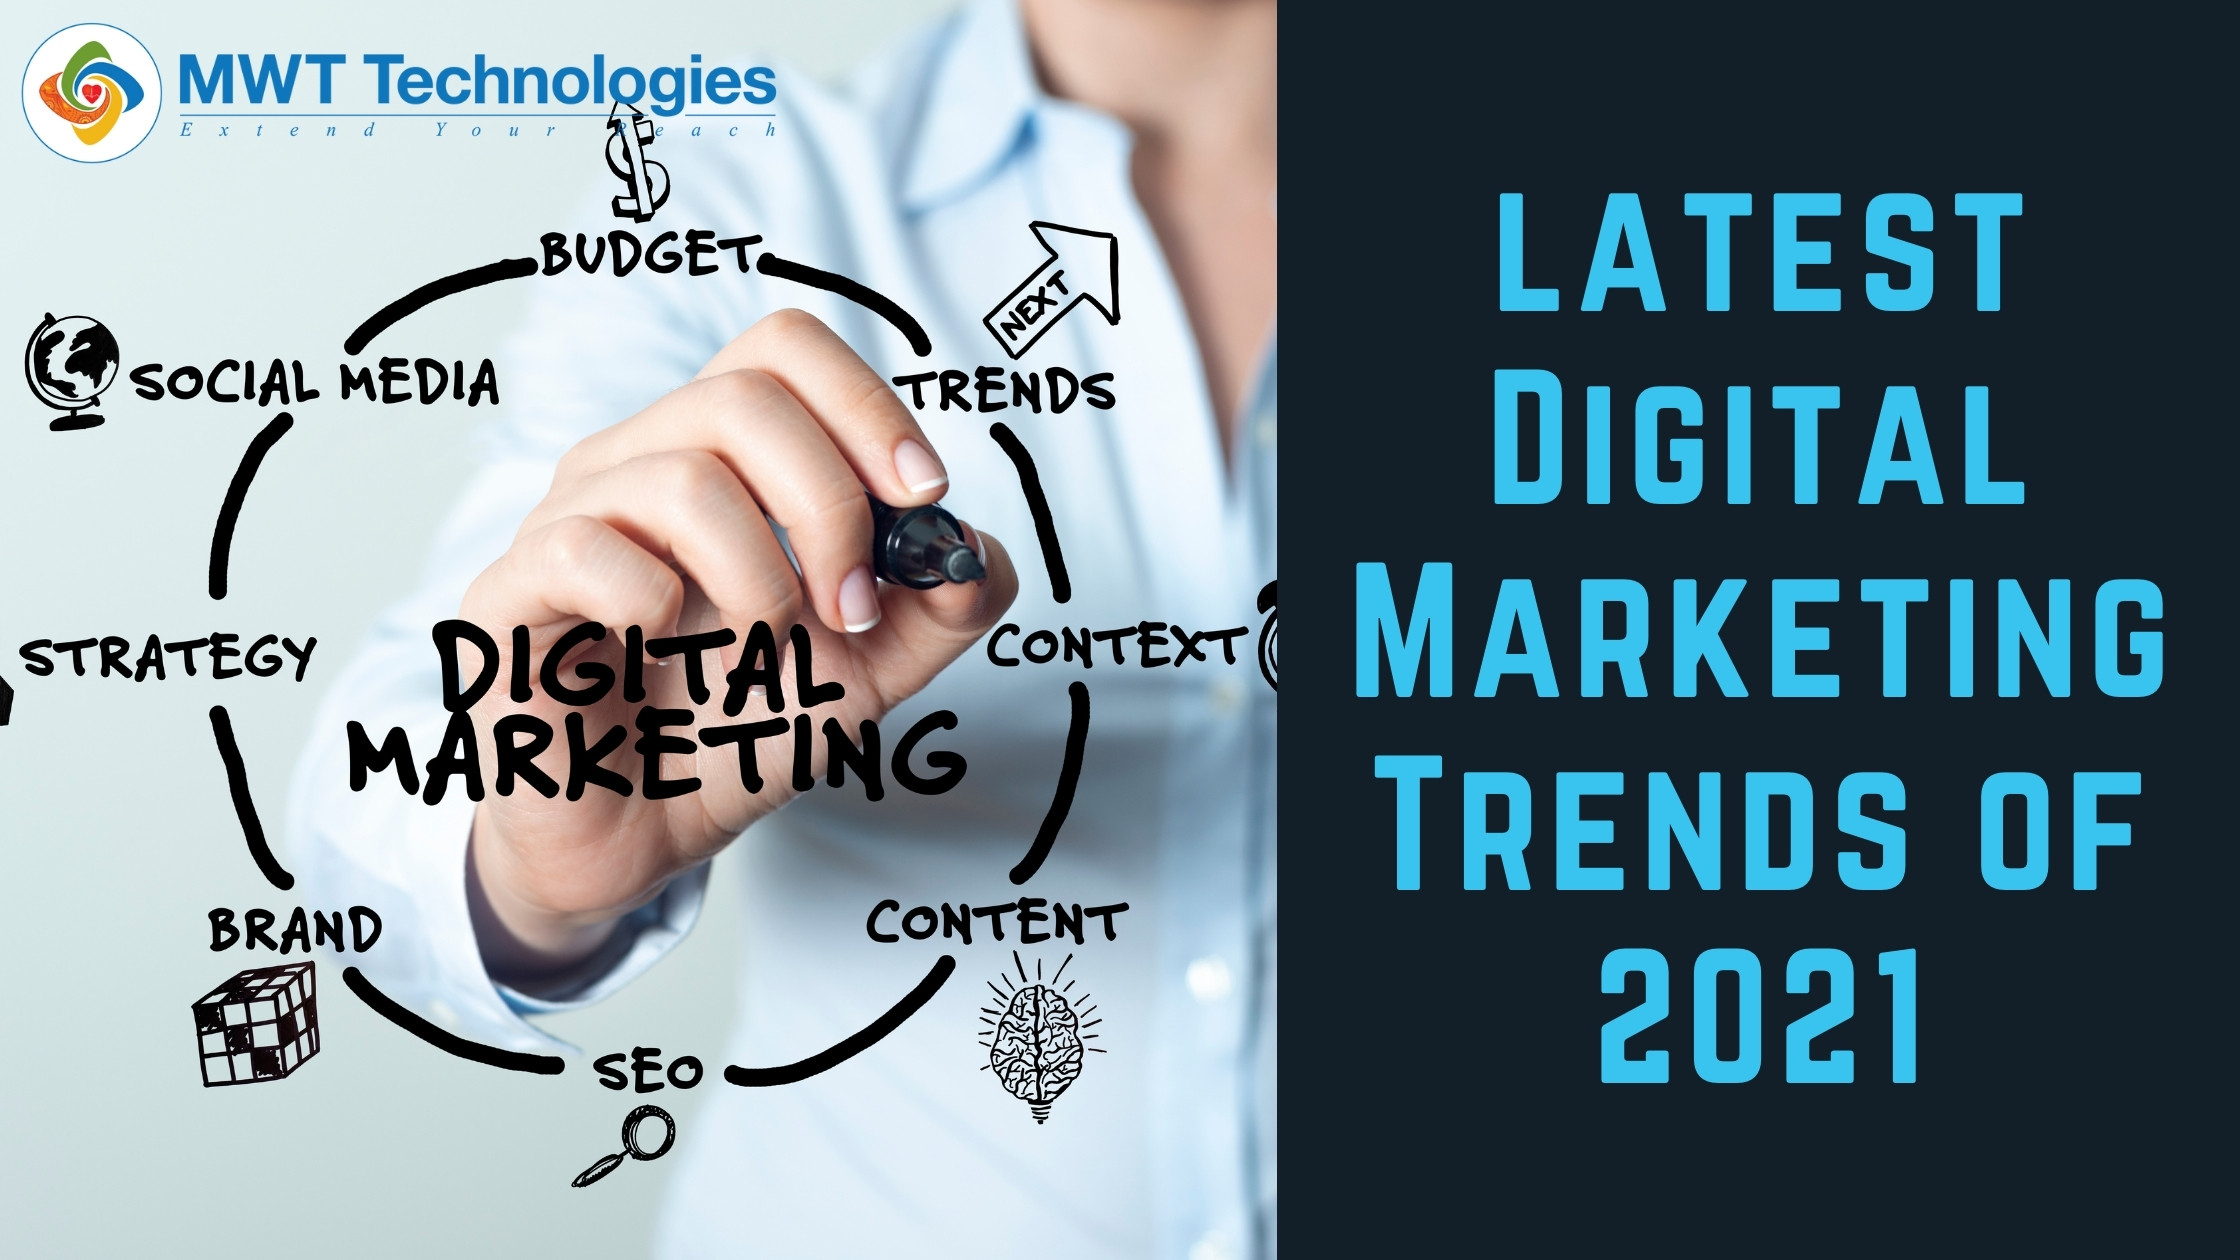 Explore the Latest Digital Marketing Trends of 2021!